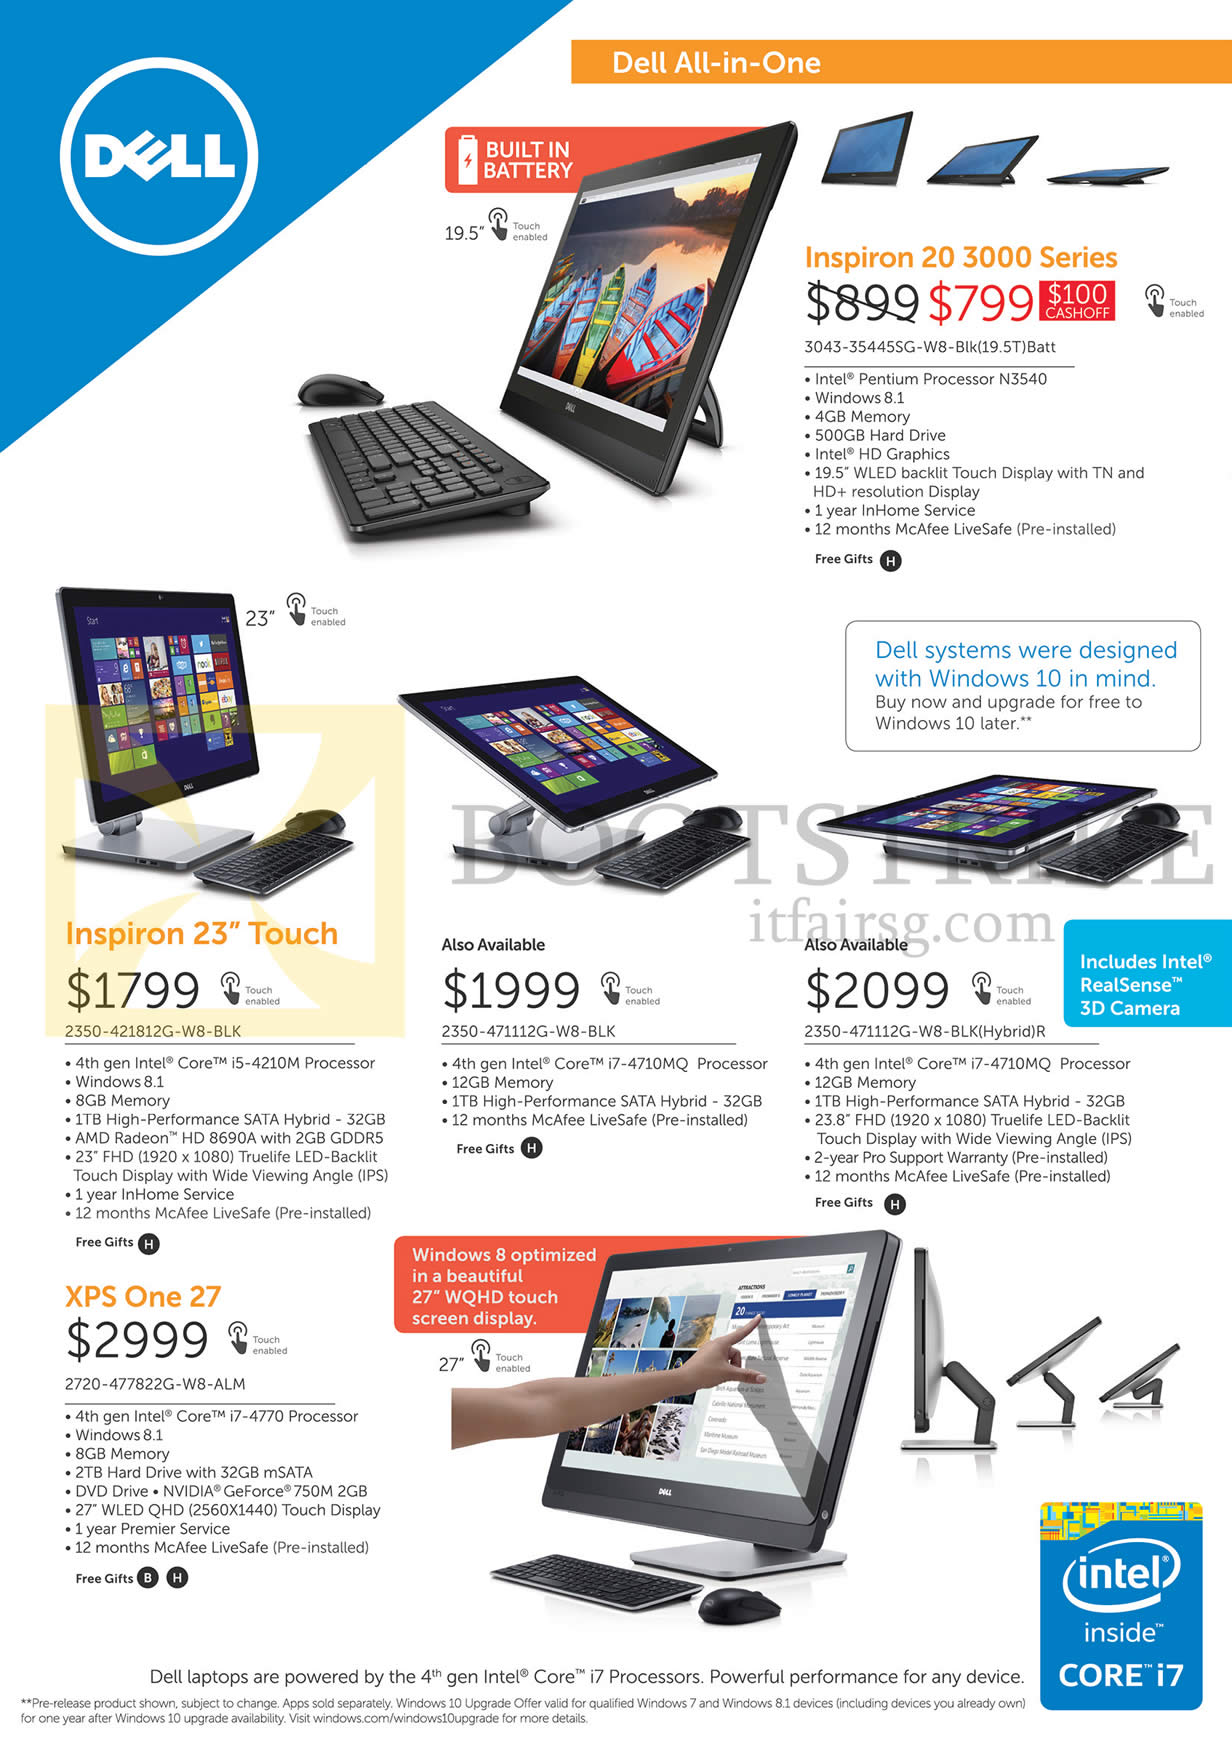 PC SHOW 2015 price list image brochure of Dell AIO Desktop PCs Inspiron 20 3000 Series, 23 Touch, XPS One 27